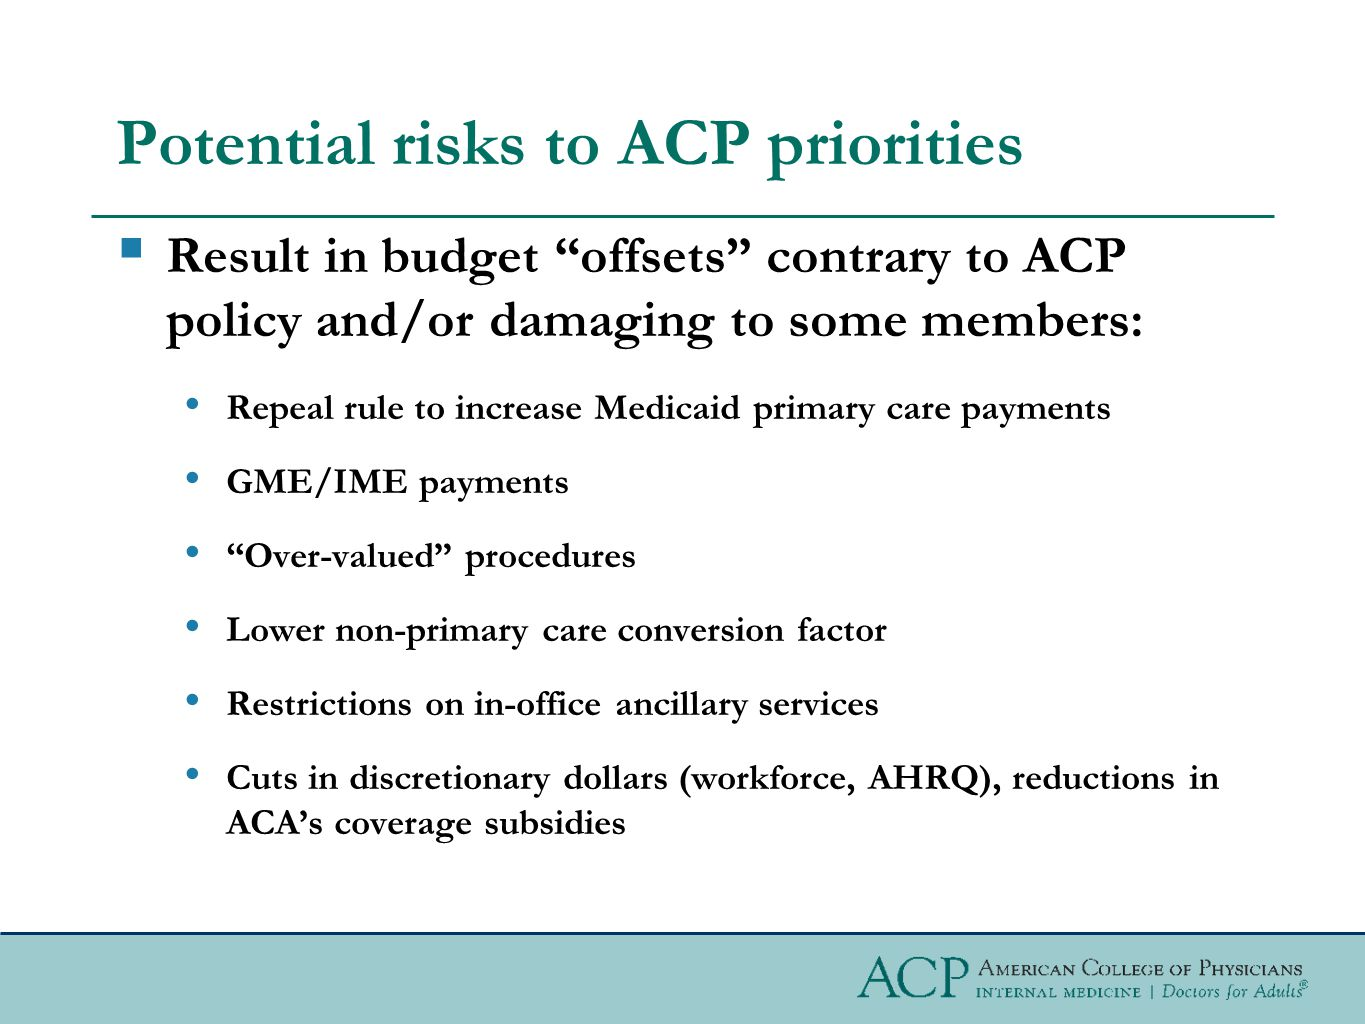 Potential risks to ACP priorities  Result in budget offsets contrary to ACP policy and/or damaging to some members: Repeal rule to increase Medicaid primary care payments GME/IME payments Over-valued procedures Lower non-primary care conversion factor Restrictions on in-office ancillary services Cuts in discretionary dollars (workforce, AHRQ), reductions in ACA's coverage subsidies